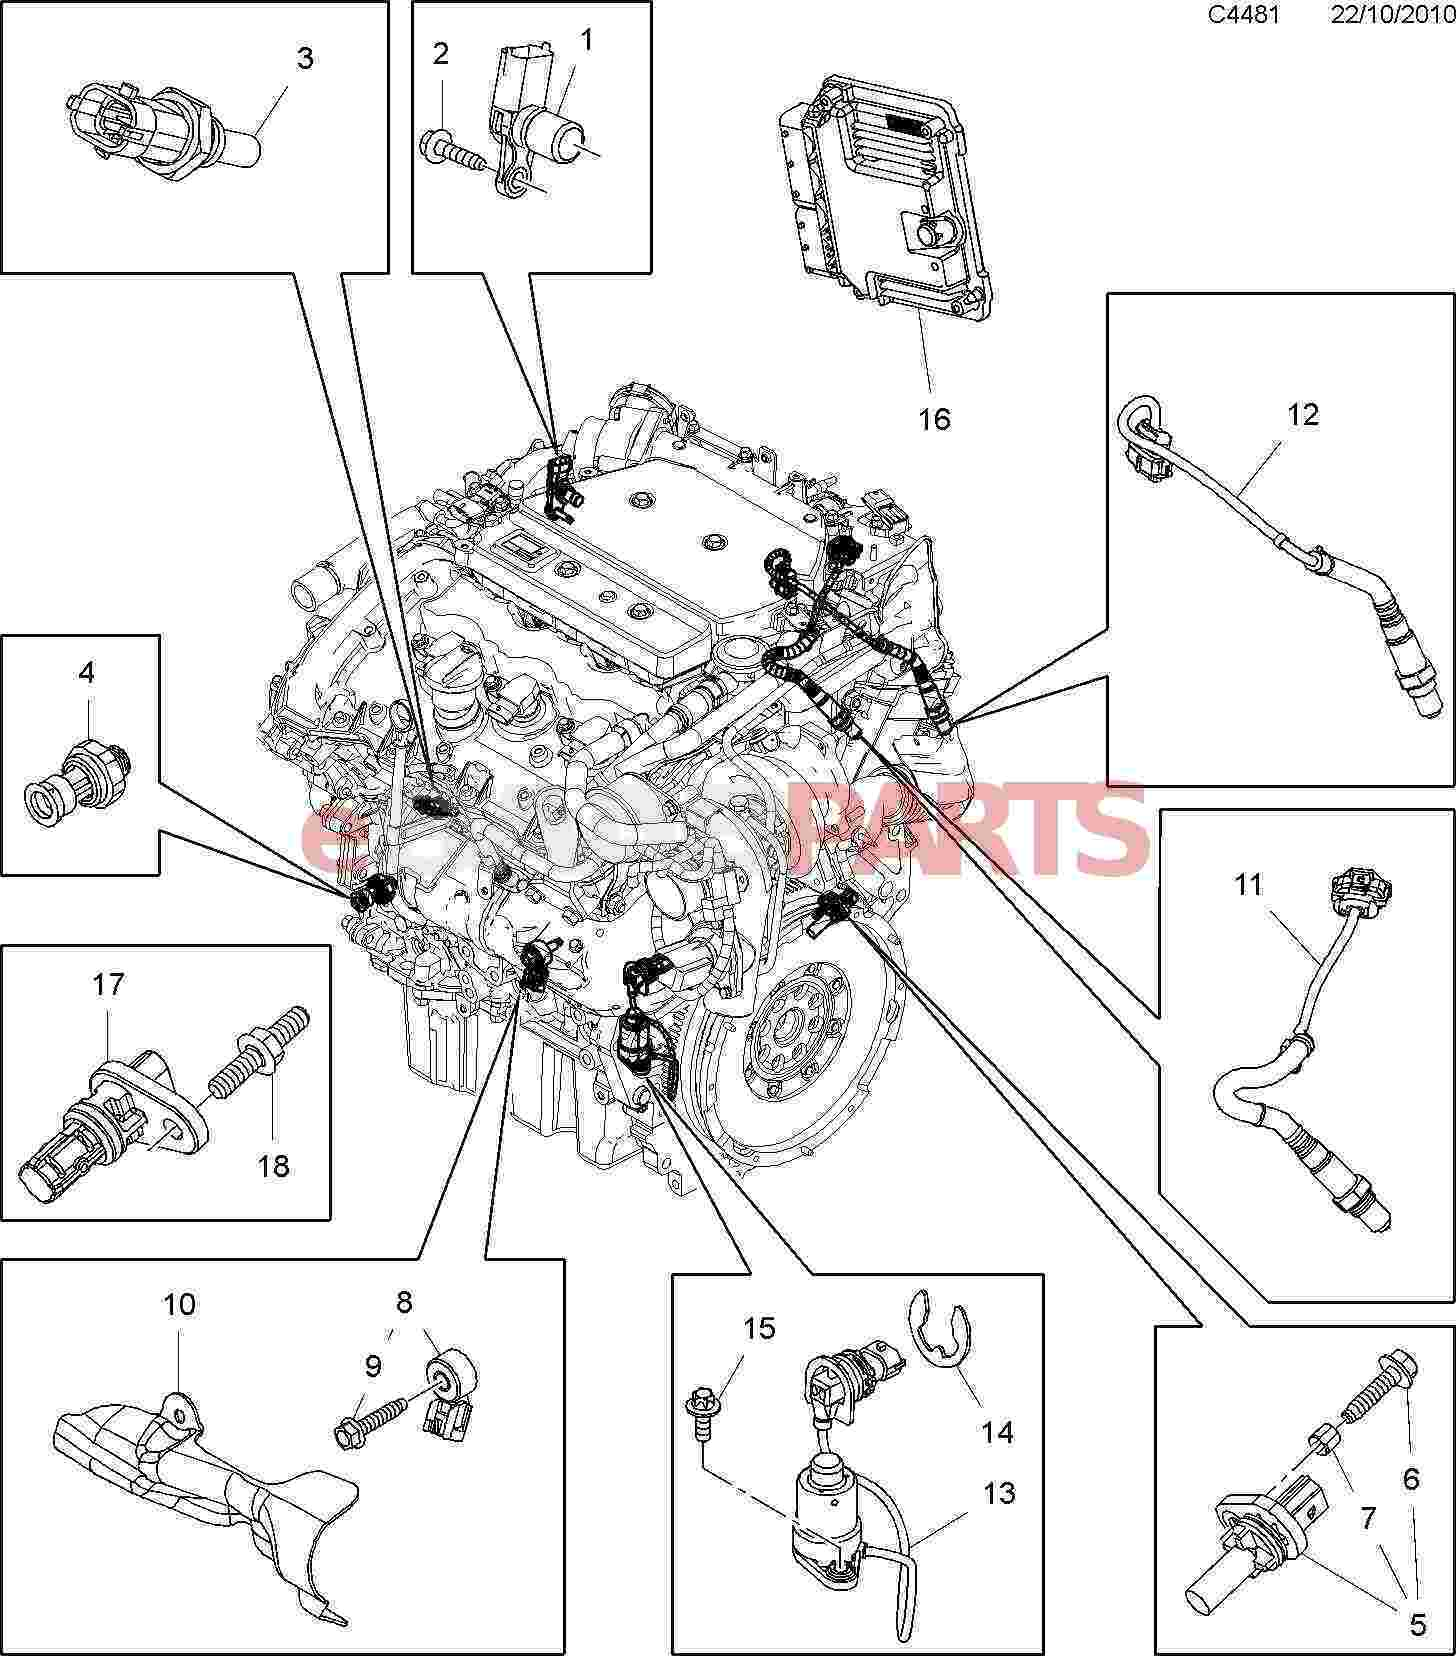 Saturn S Series Transmission Problems additionally Saab 900 Wiring Diagram furthermore 2000 Audi Tt Stereo Wiring Diagram furthermore 1c49j 1994 Ford Ranger Xlt 34 000 Mile Cherry Never further Audi R8 Wiring Diagram. on saab 9 3 electrical wiring diagram